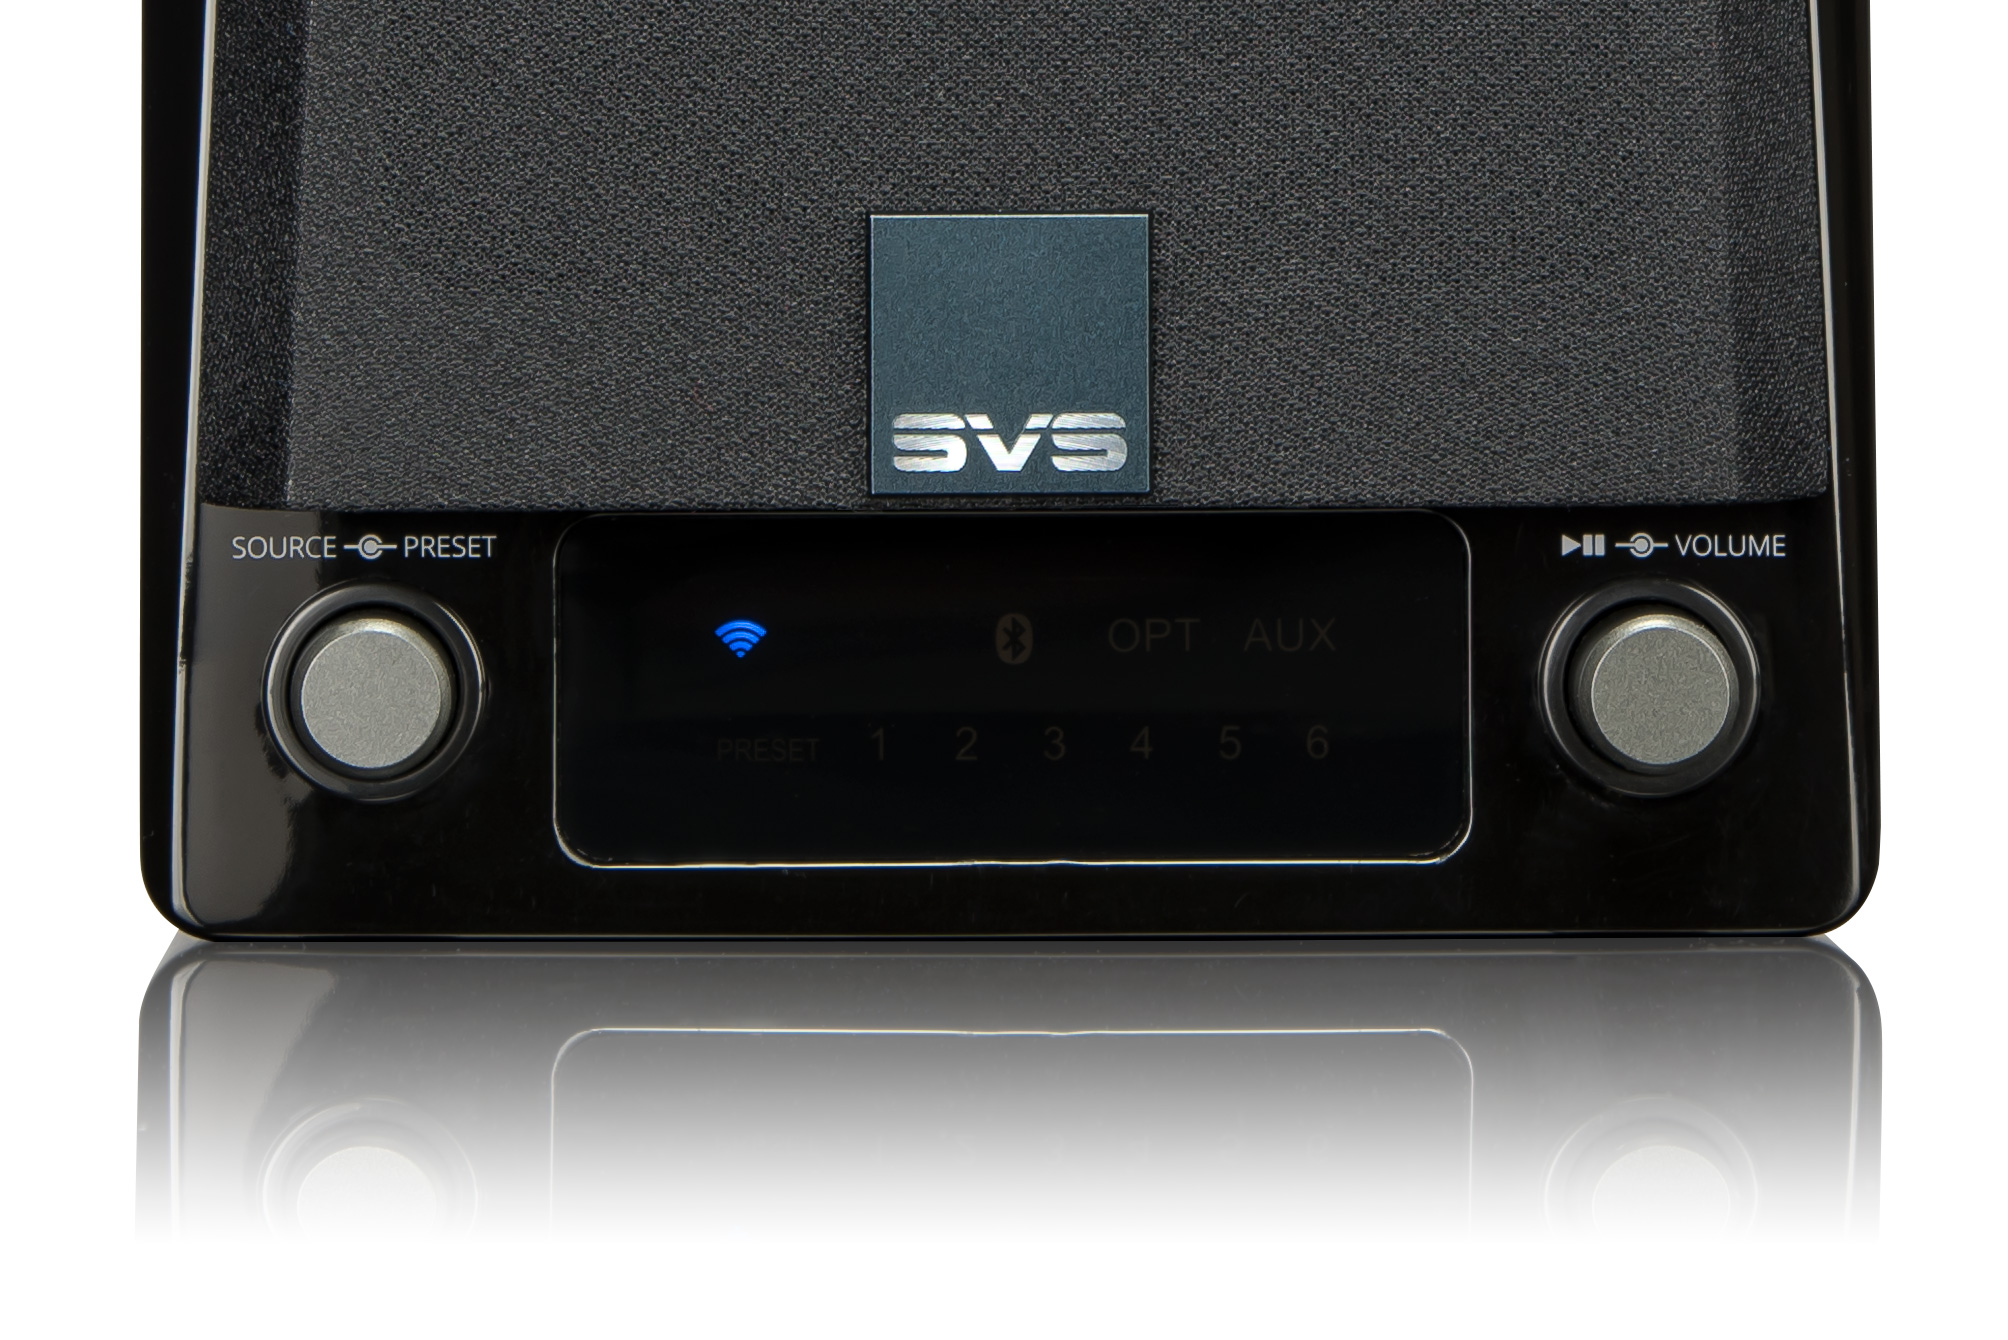 Secrets of an audio device, or How to connect speakers to a TV